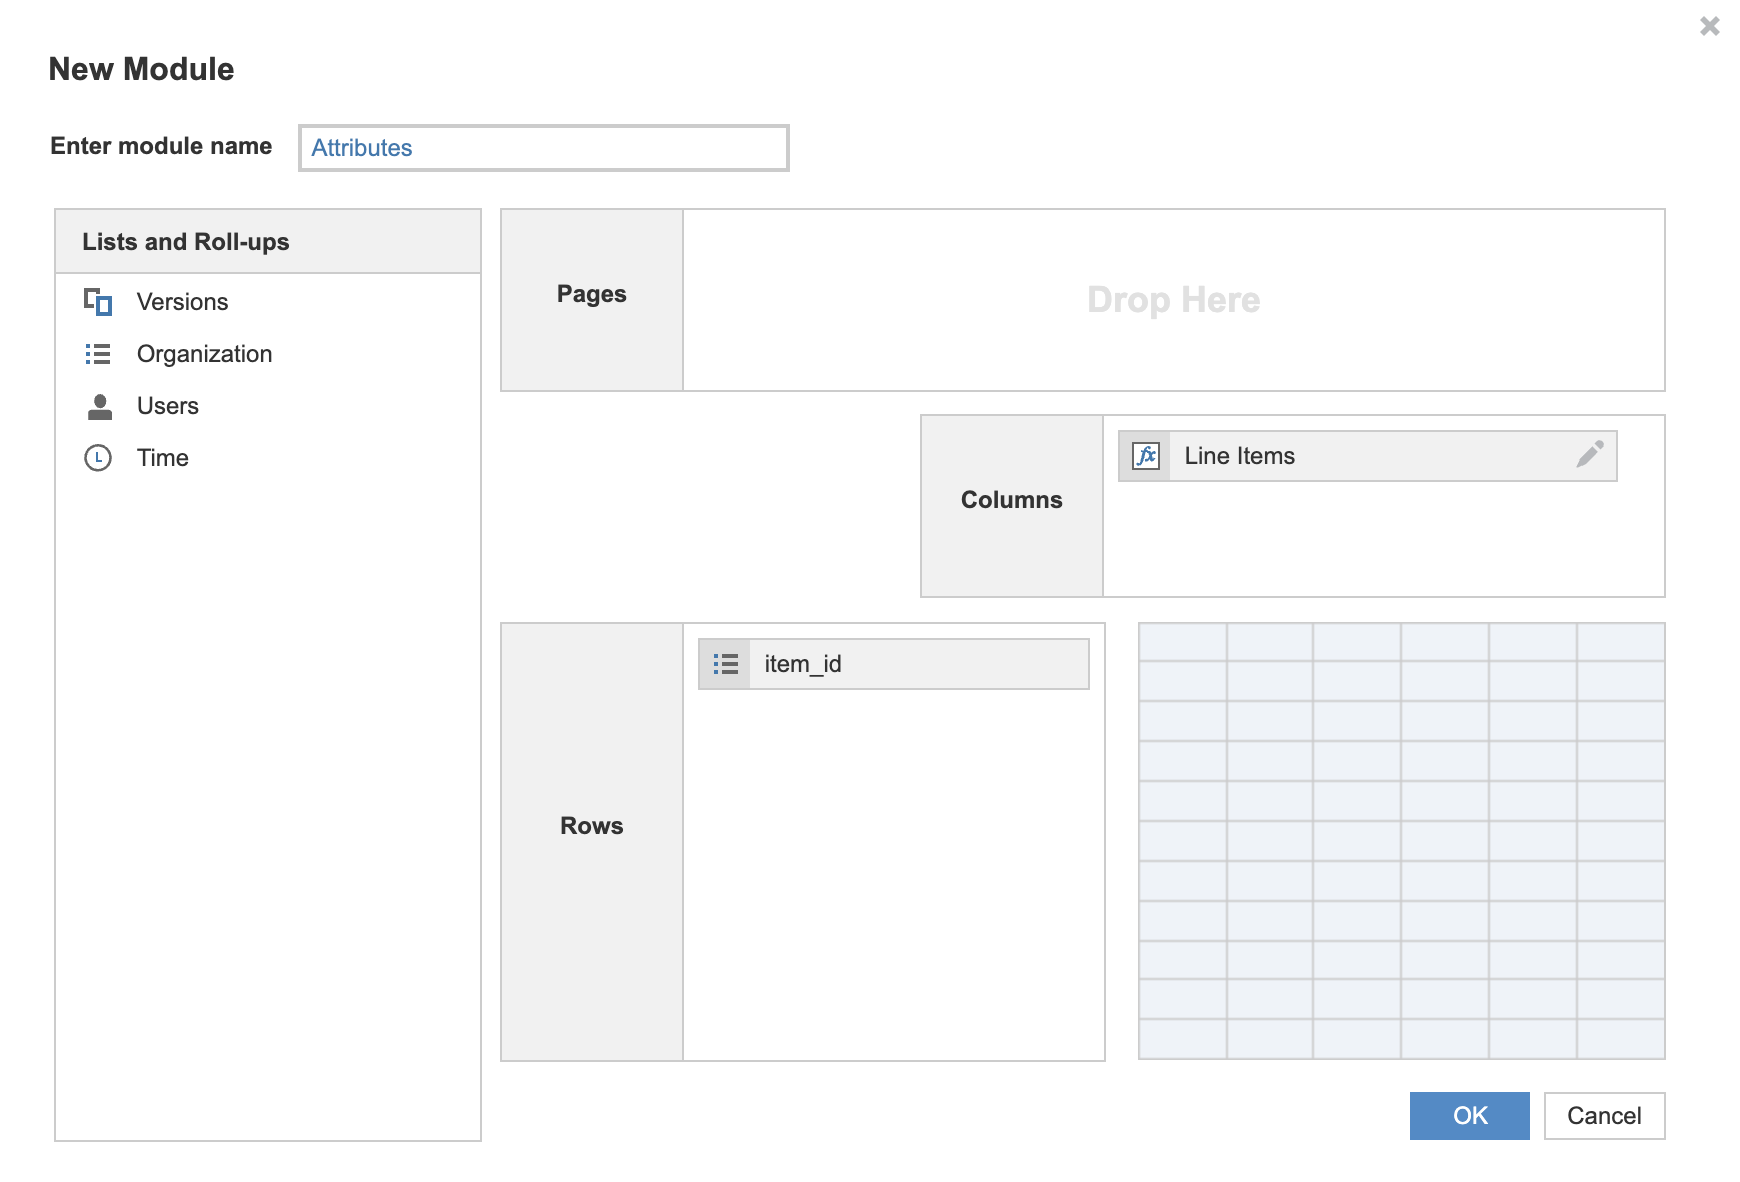 There is no Time dimension for attributes so you just need to have the item_id in rows and the line items in columns.